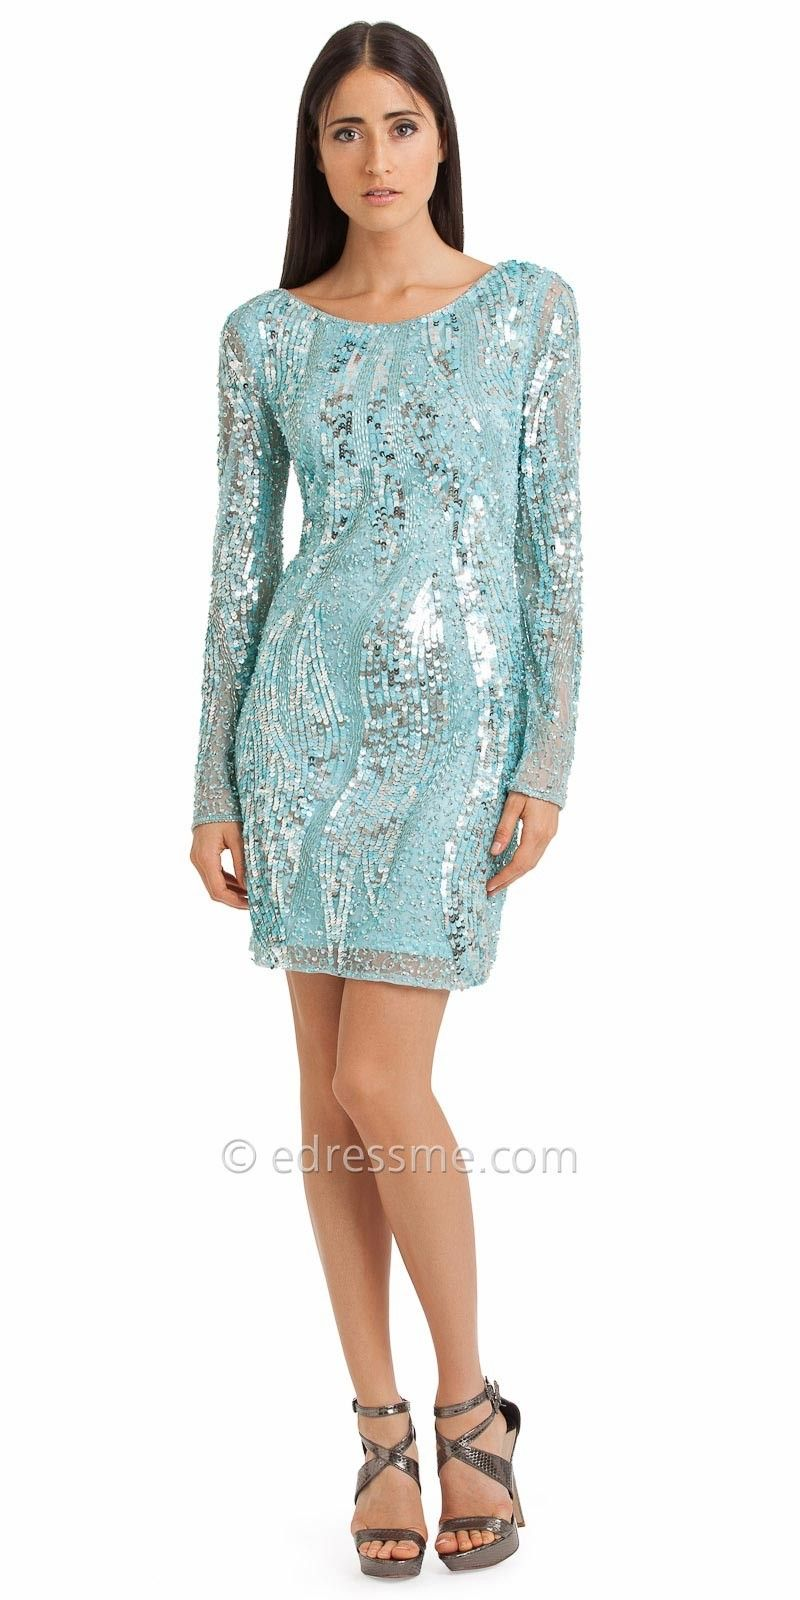 Awesome Long Sleeve Cocktail Dresses : Long Sleeve Cocktail Dresses ...